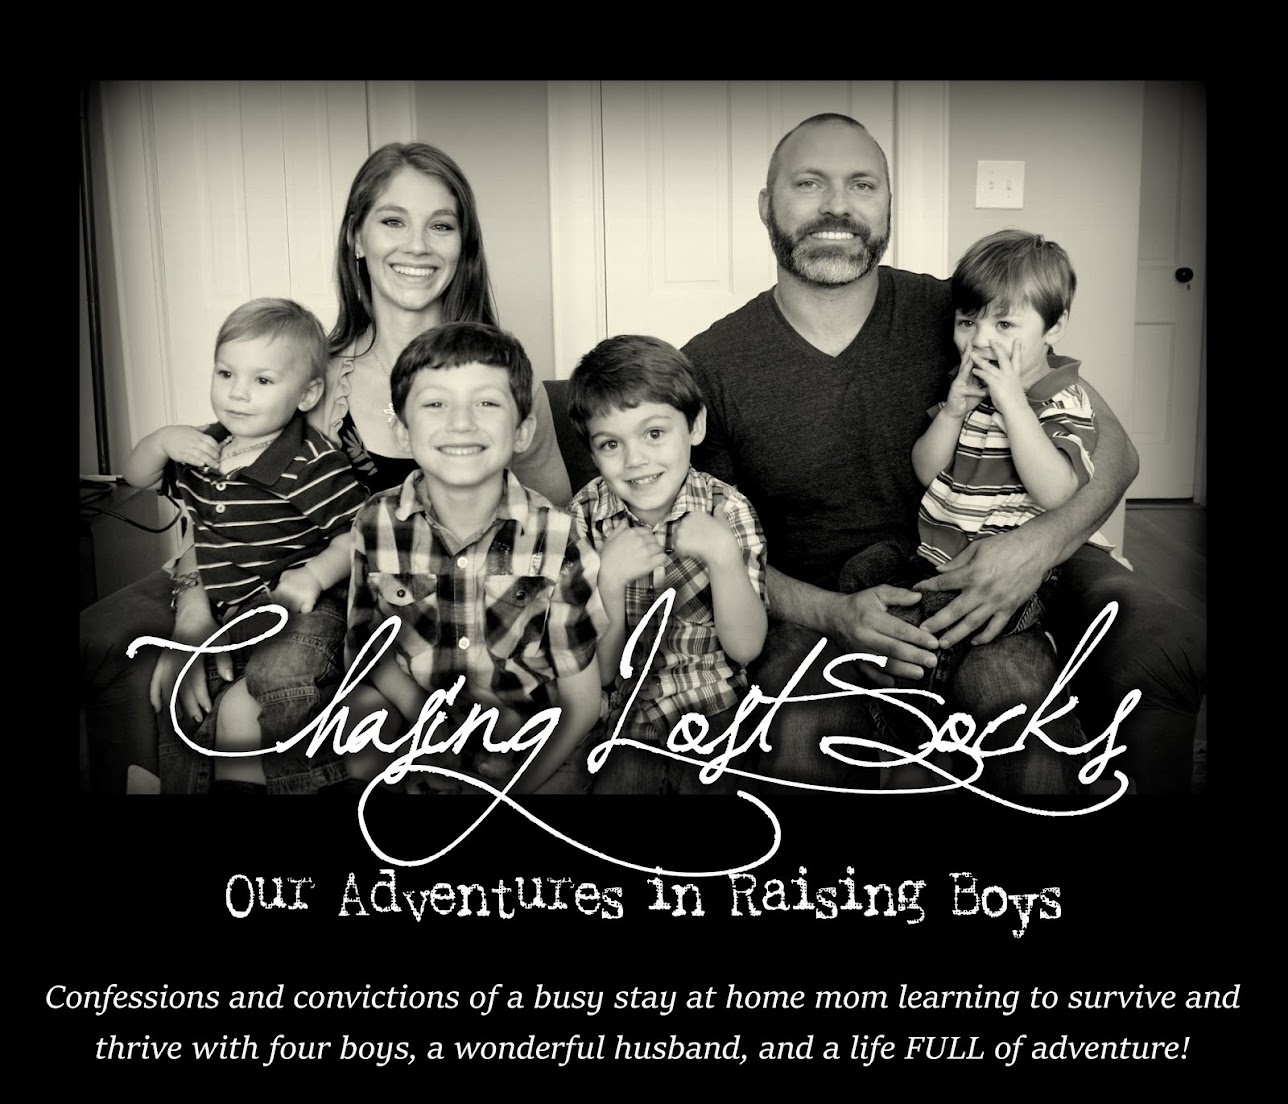 Chasing Lost Socks: Our Adventures in Raising Boys